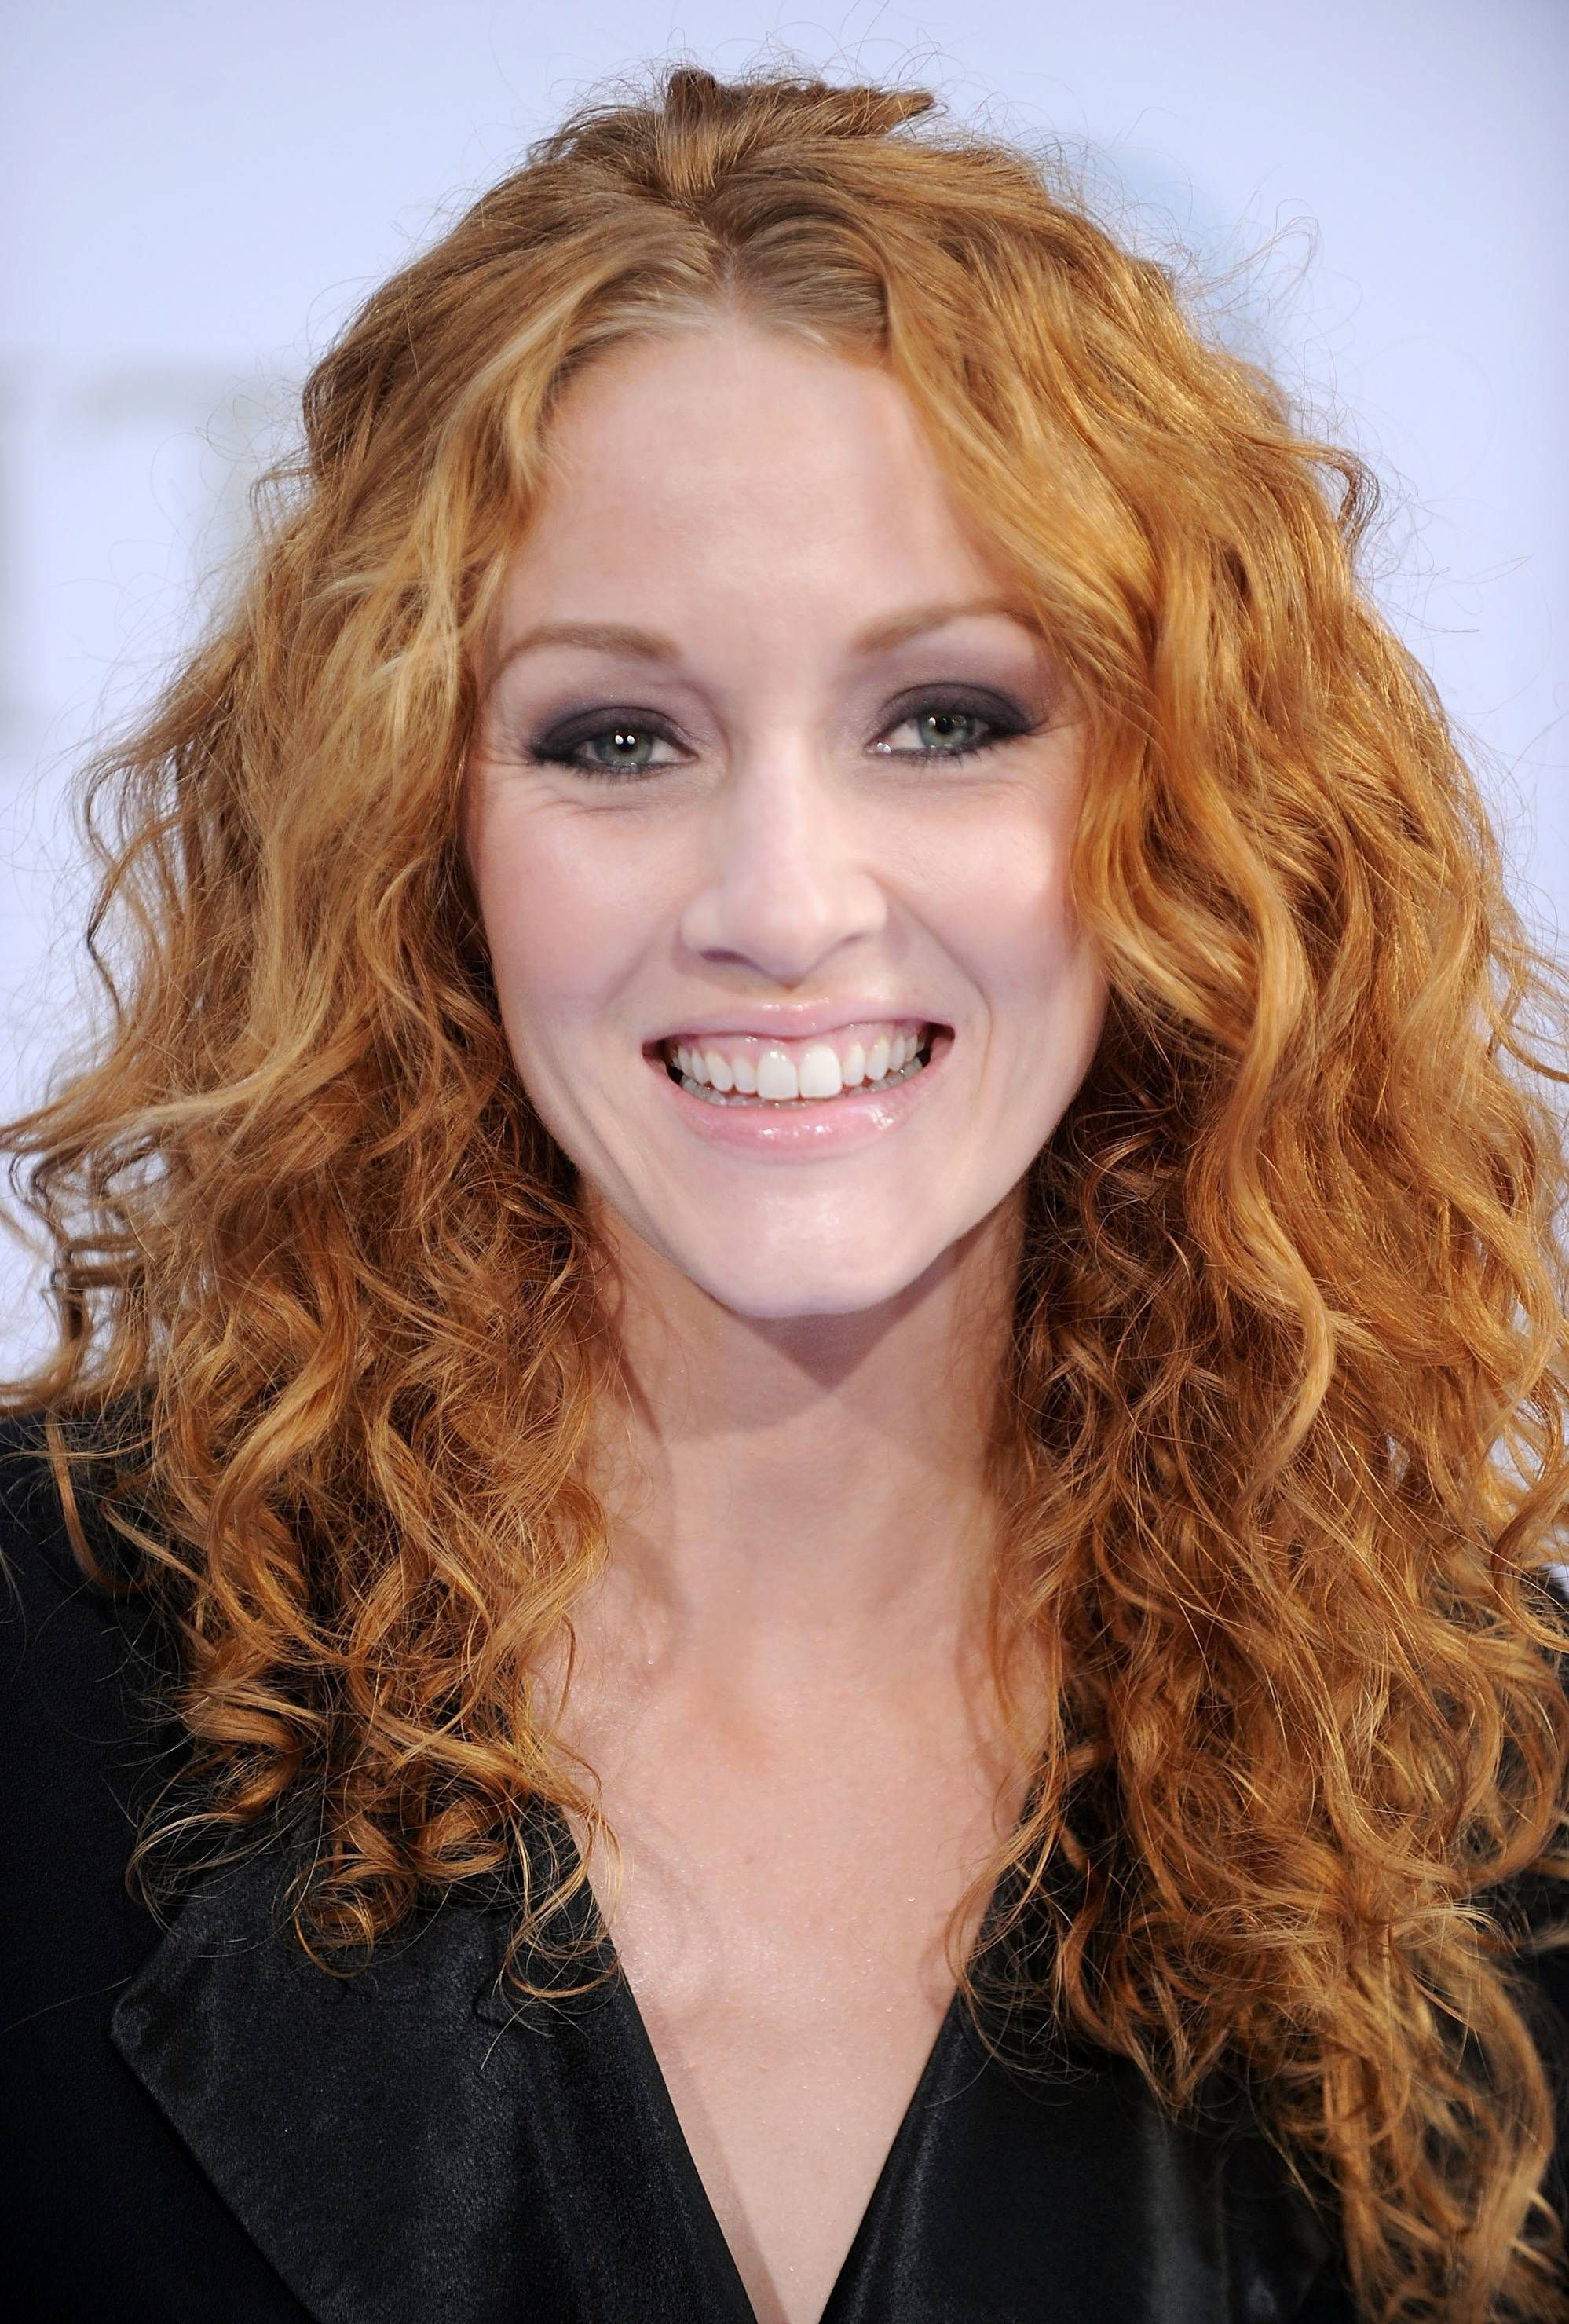 Stupendous 1000 Images About Curly Red Hair On Pinterest Curly Red Hair Hairstyles For Women Draintrainus